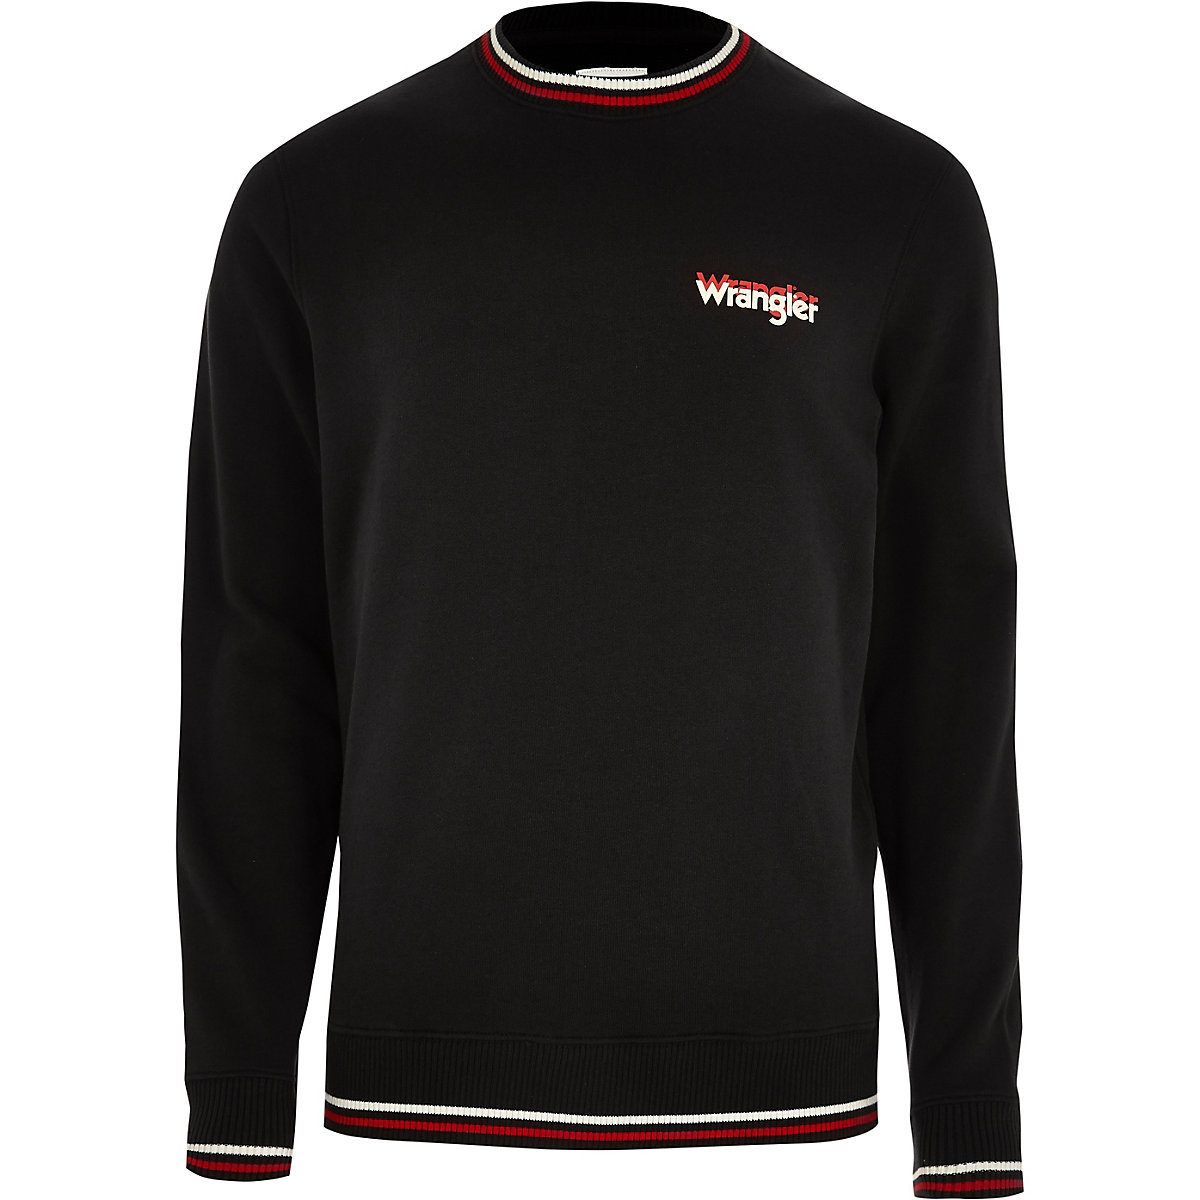 Wrangler black crew neck jumper